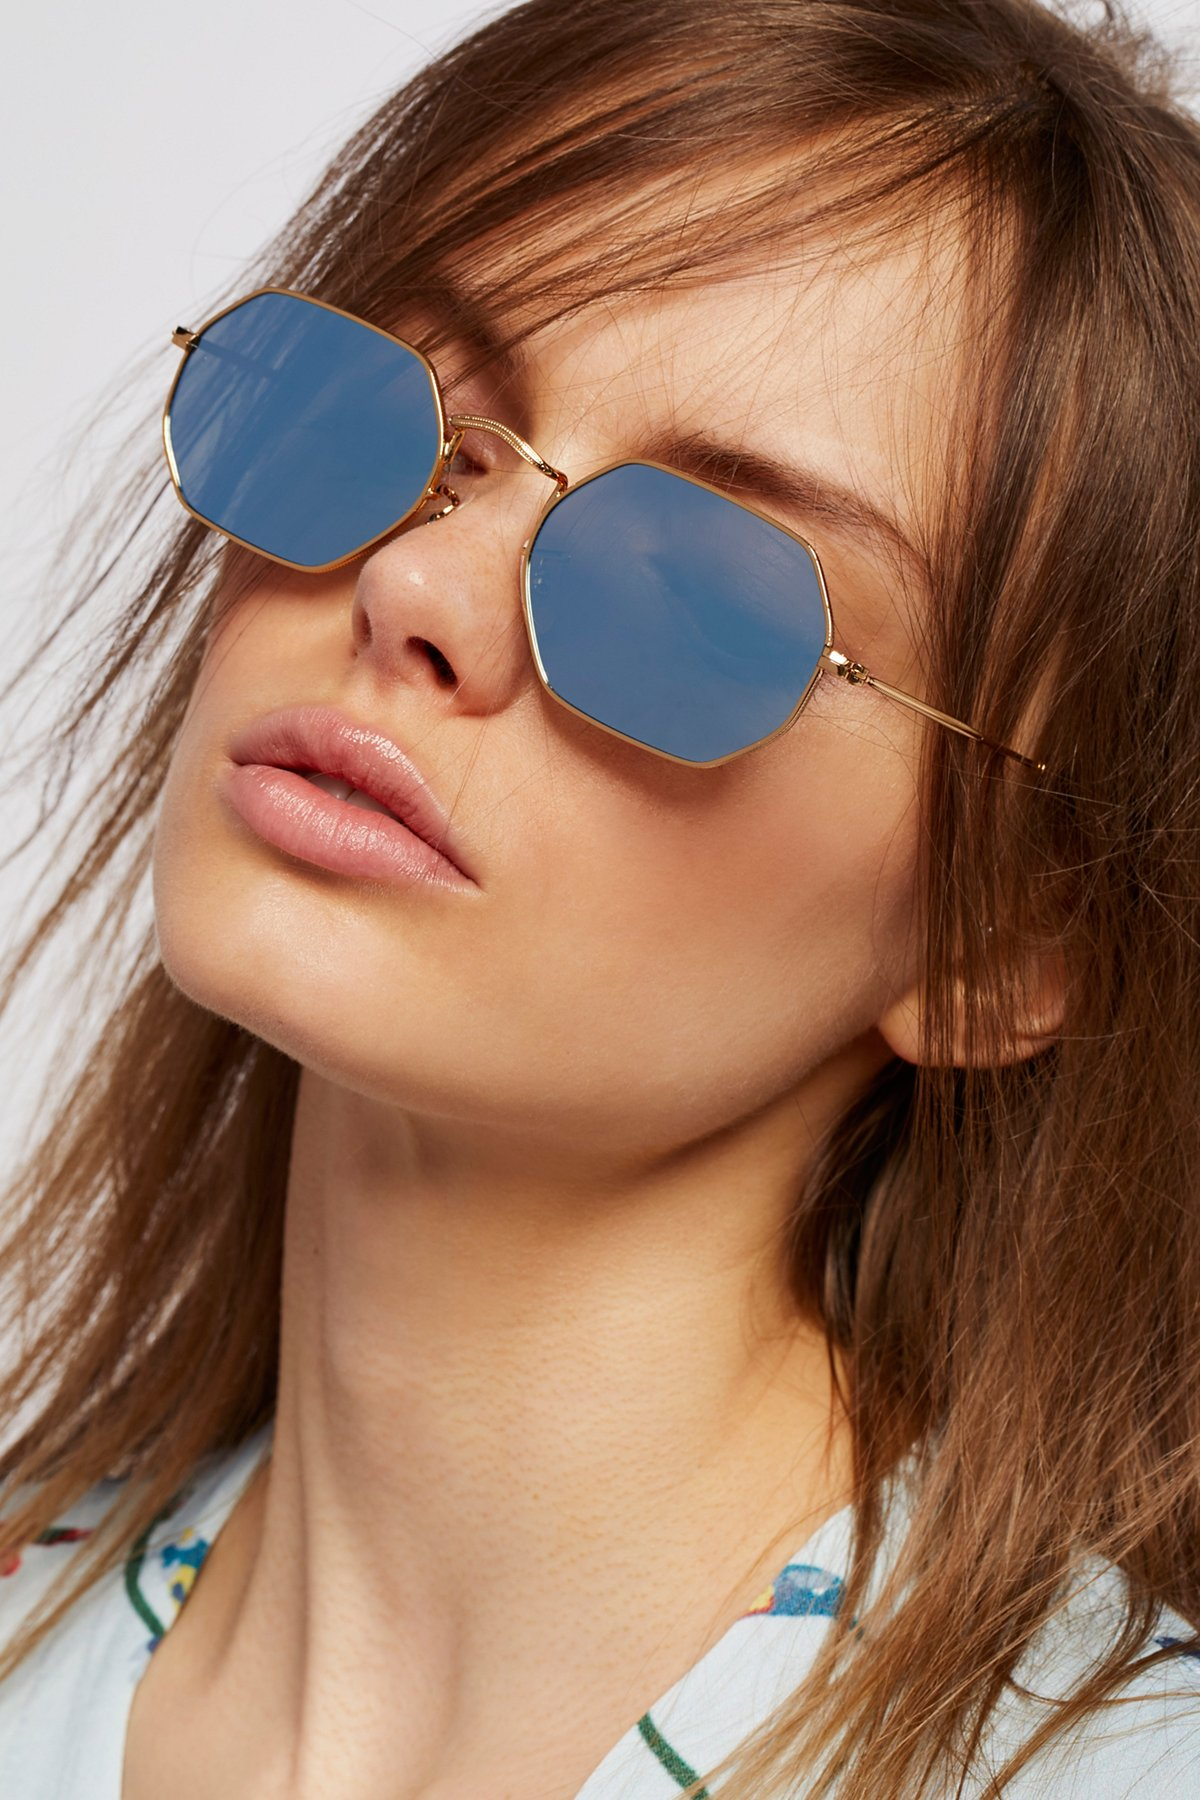 What the Hex Sunnies